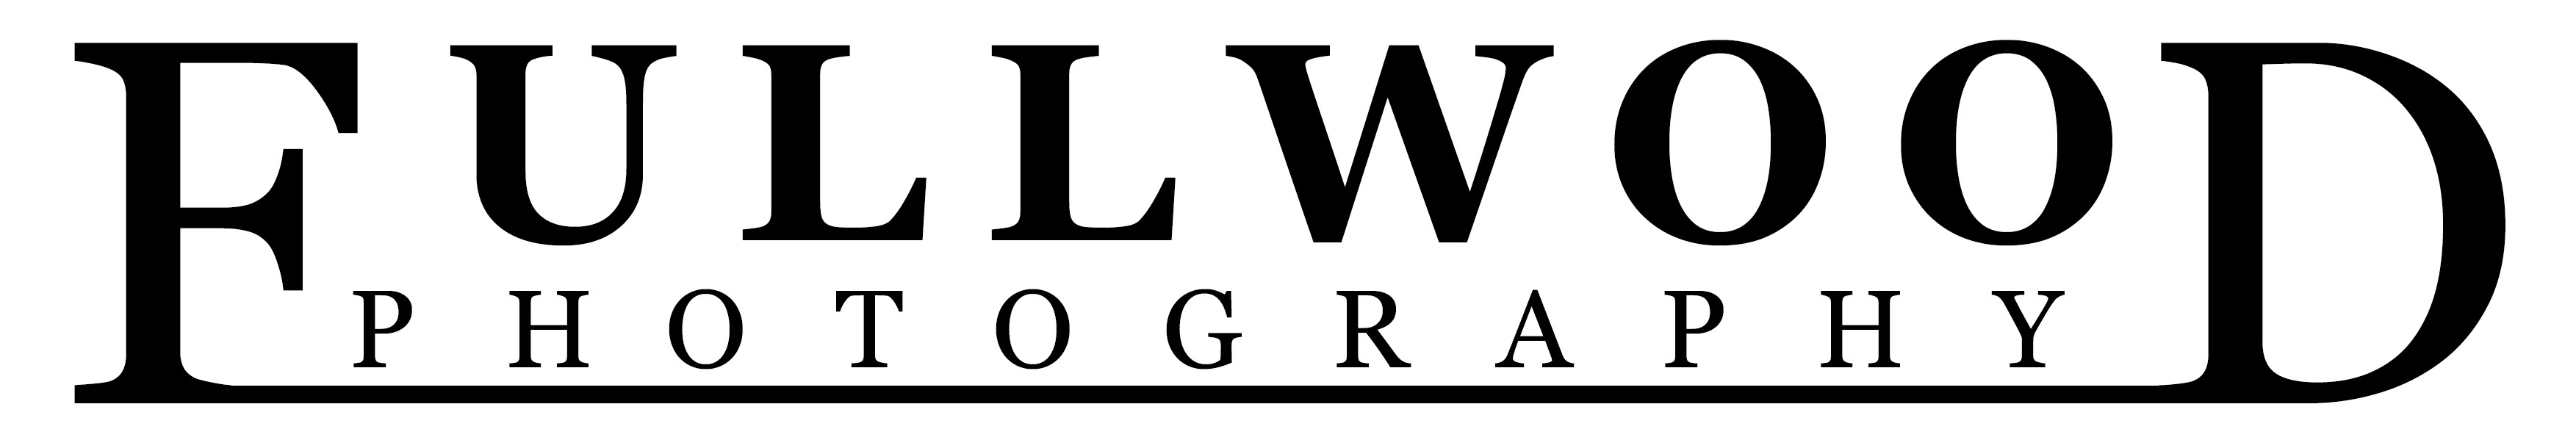 Fullwood Photography logo